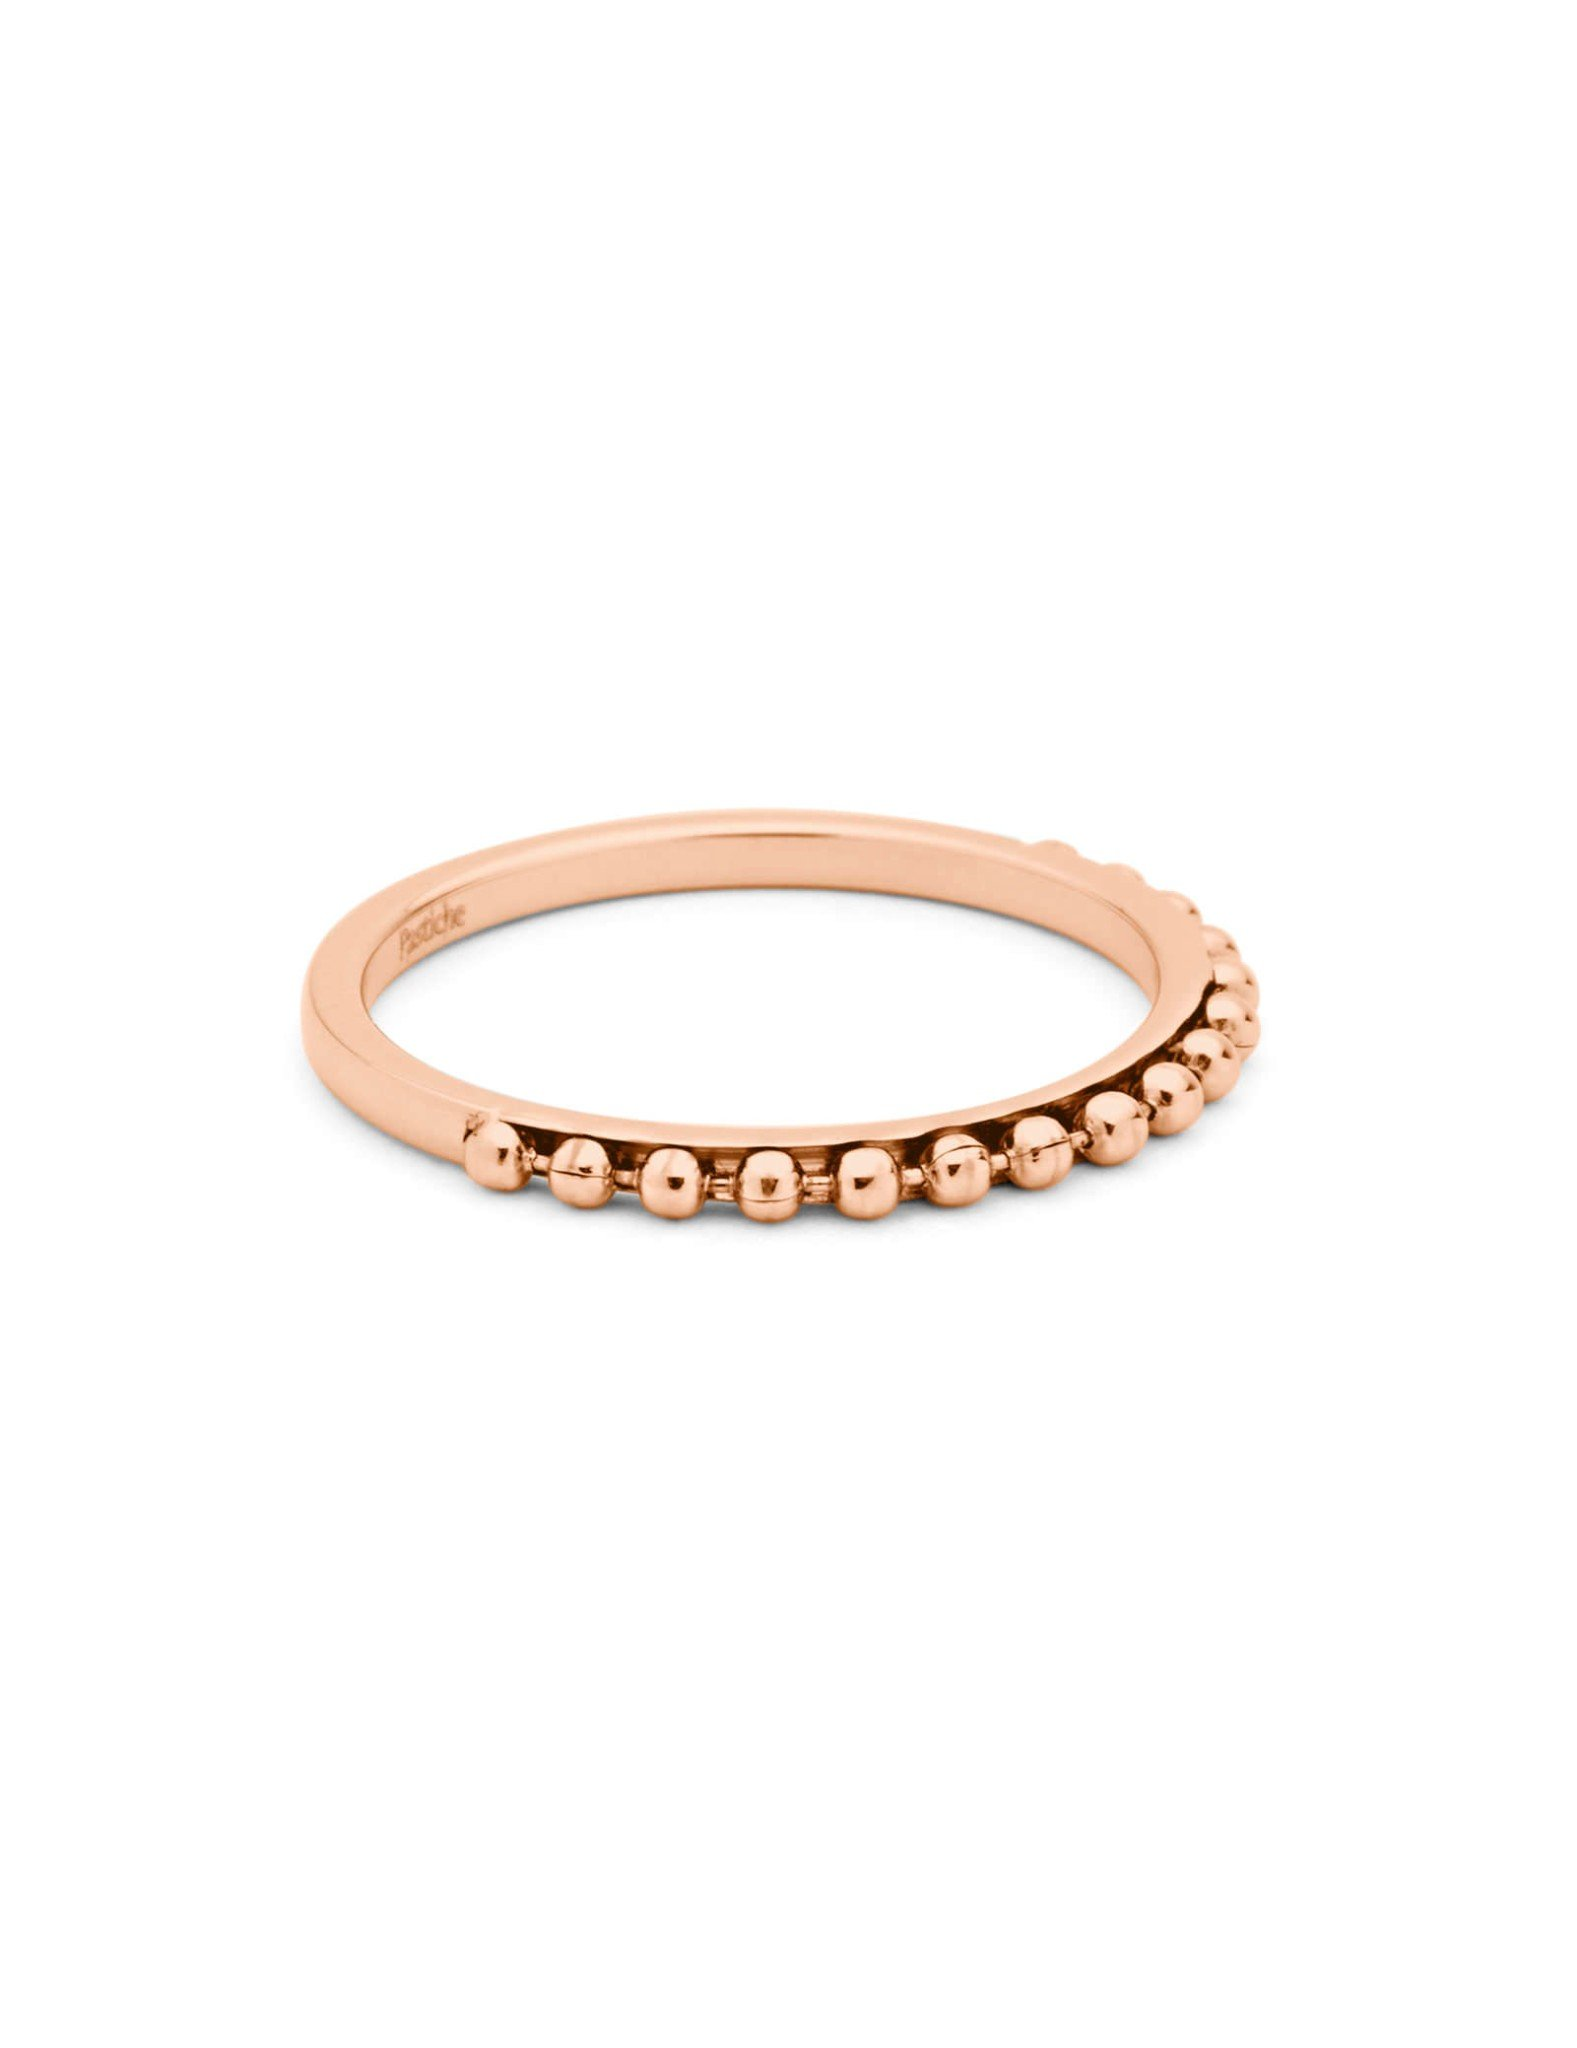 Pastiche Ball Stacking Ring in Rose Gold